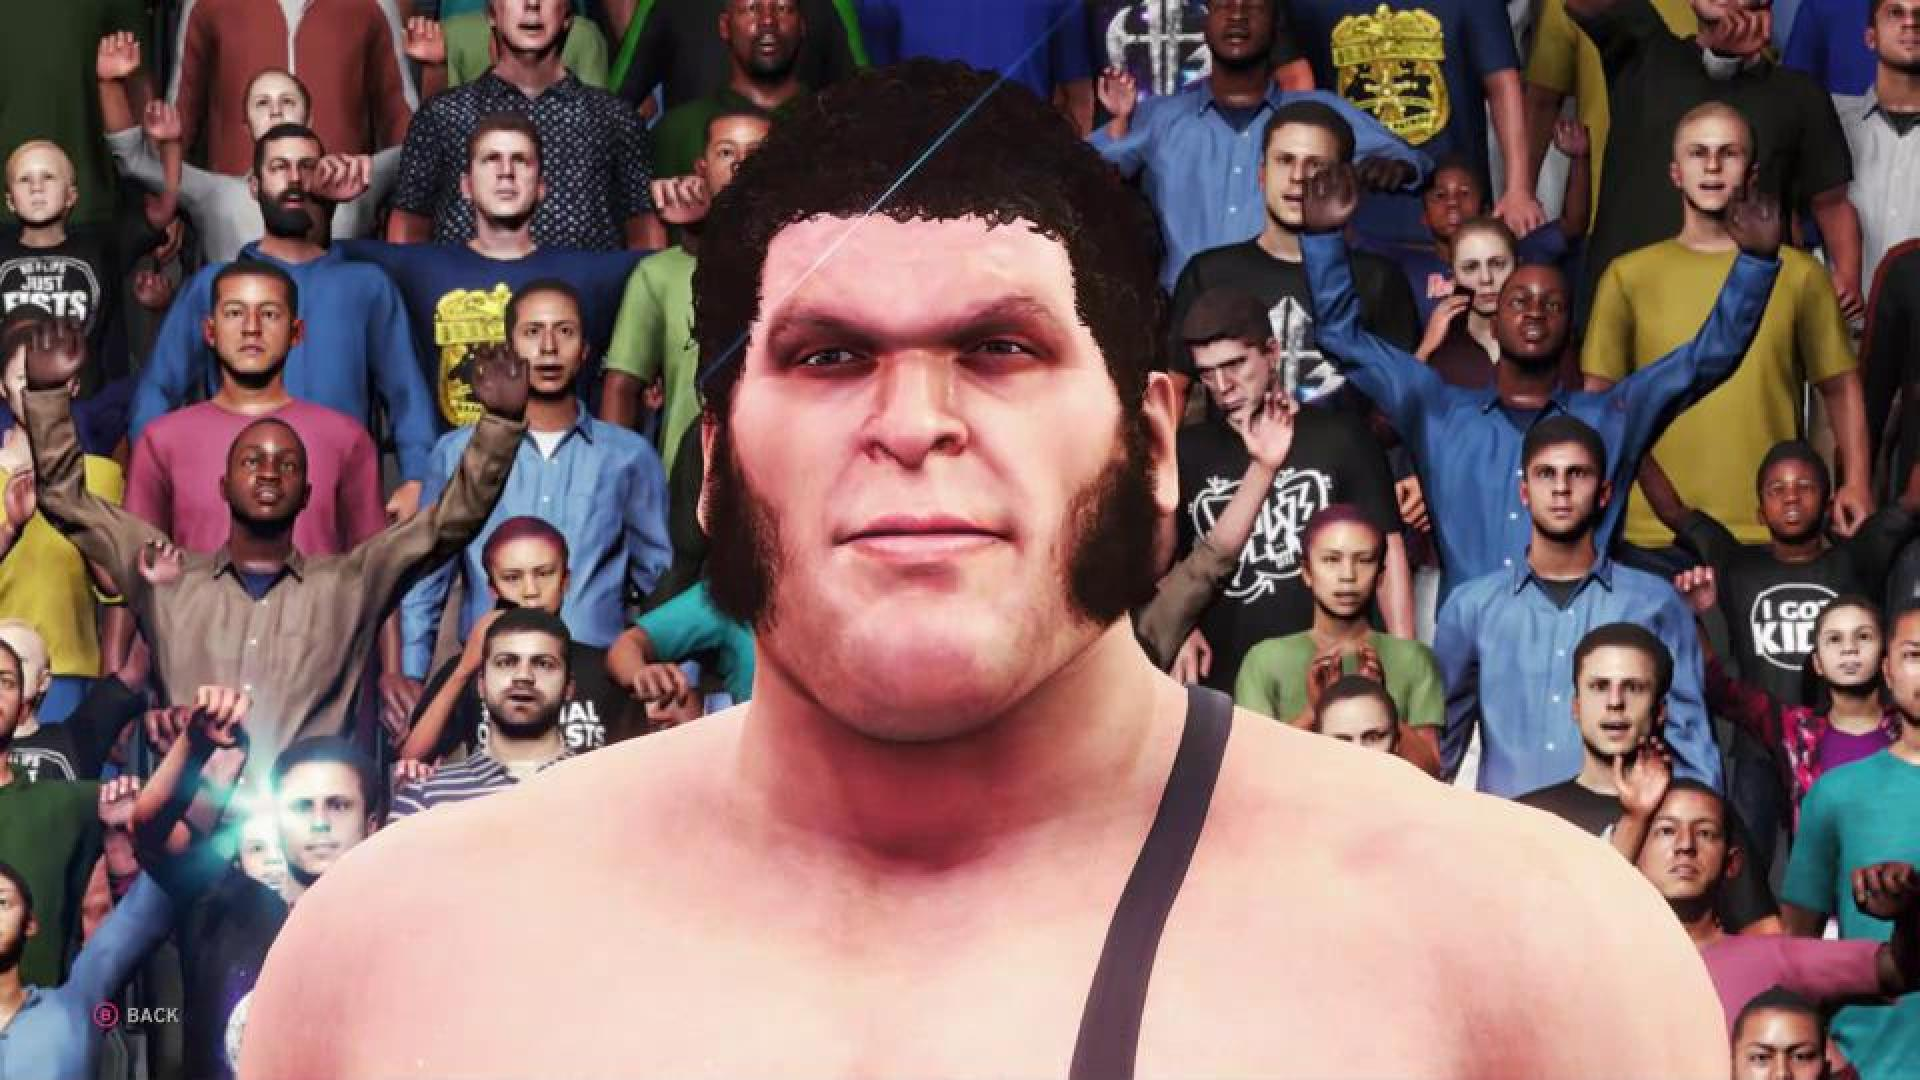 960x0 - 'WWE 2K20' Release Date And The 15 Things You Should Know About This Year's Game